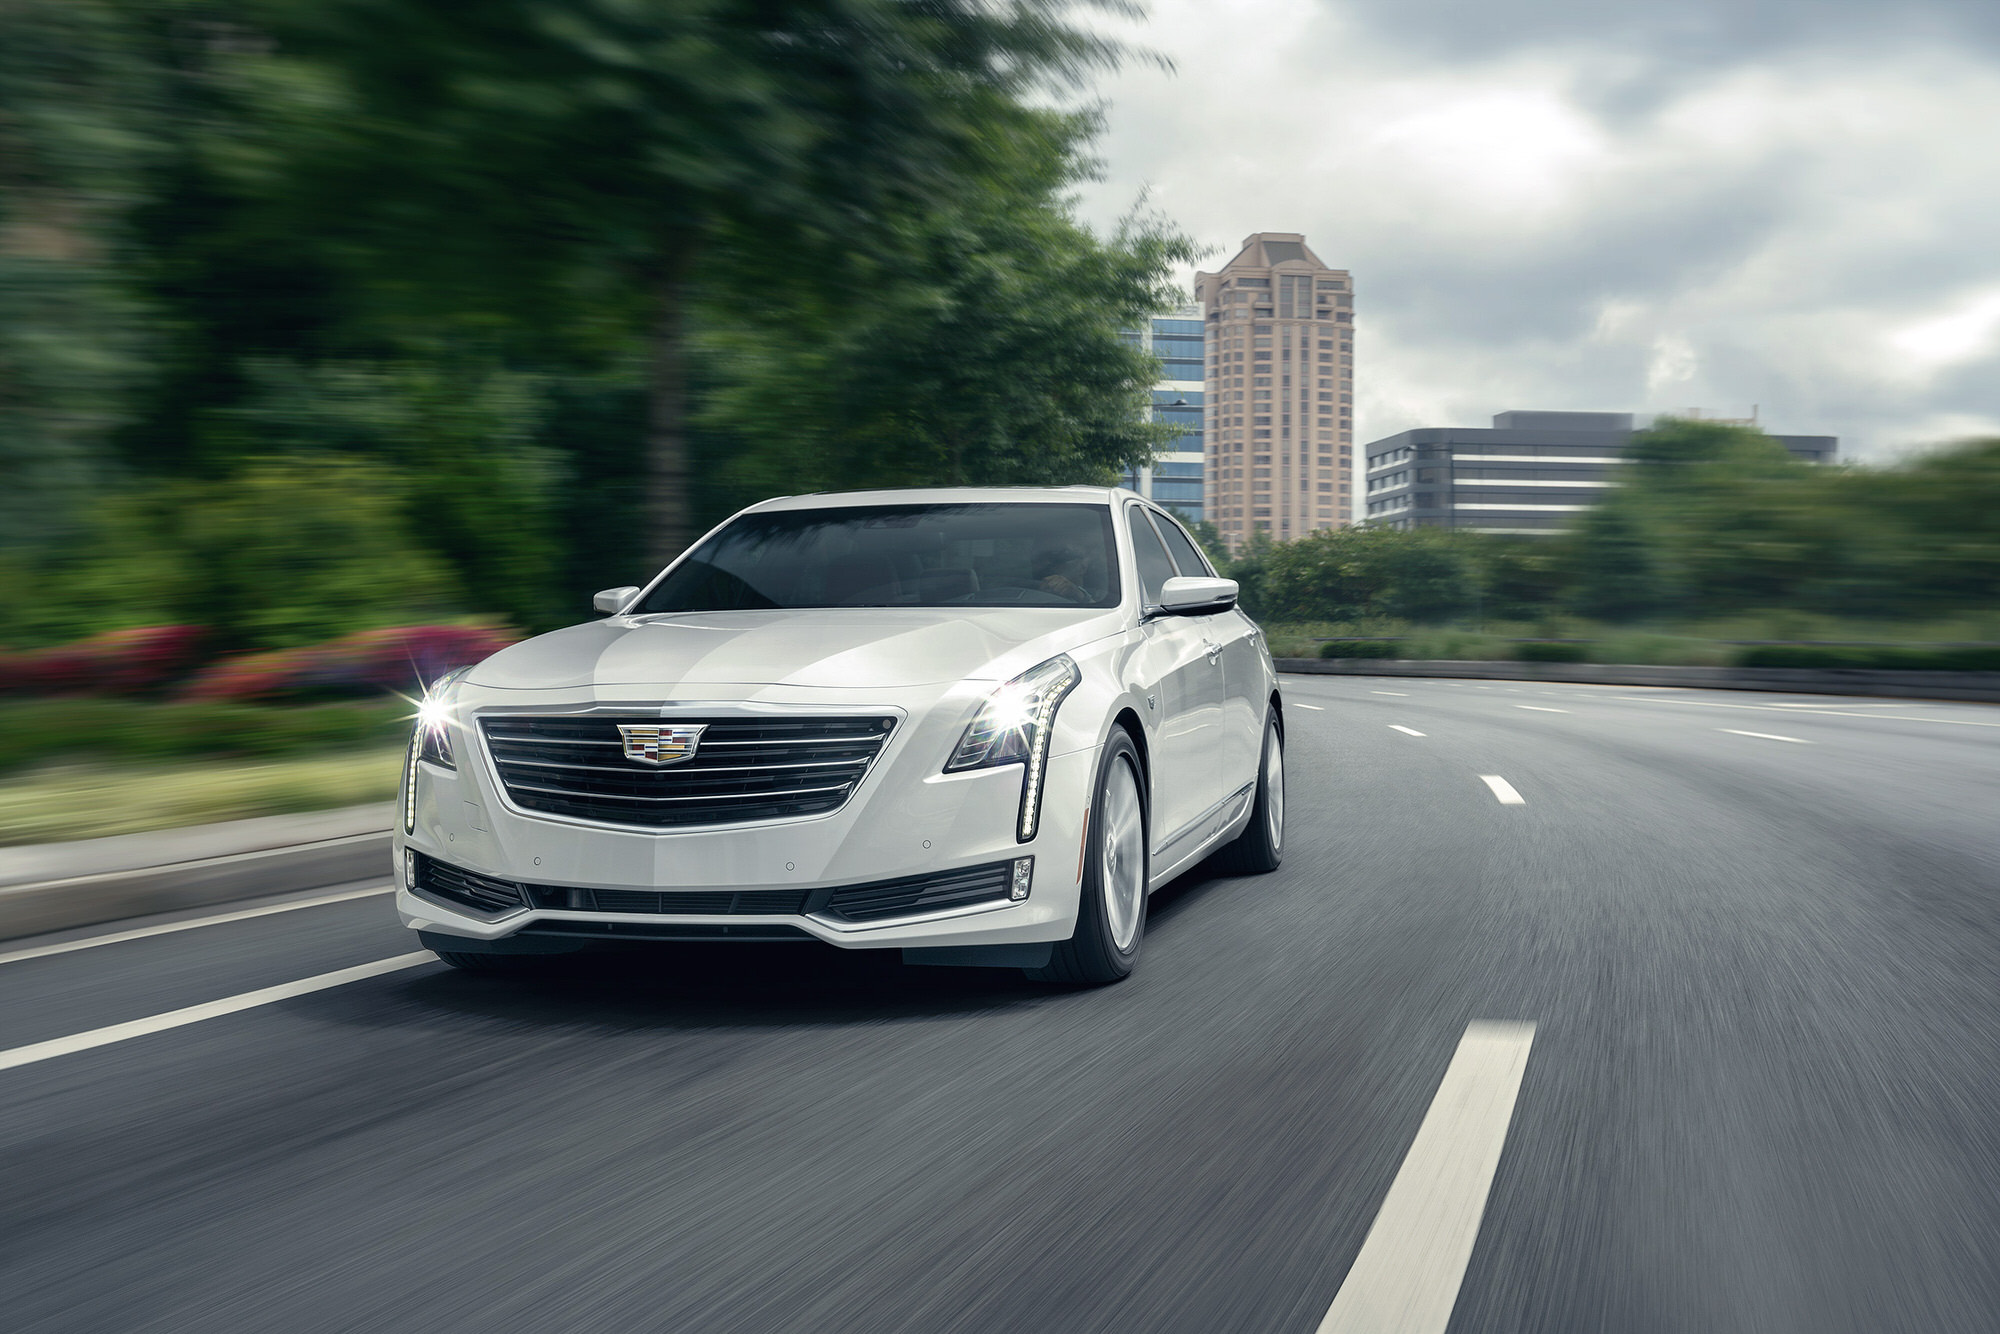 Cadillac CT6 Electric commercial photography